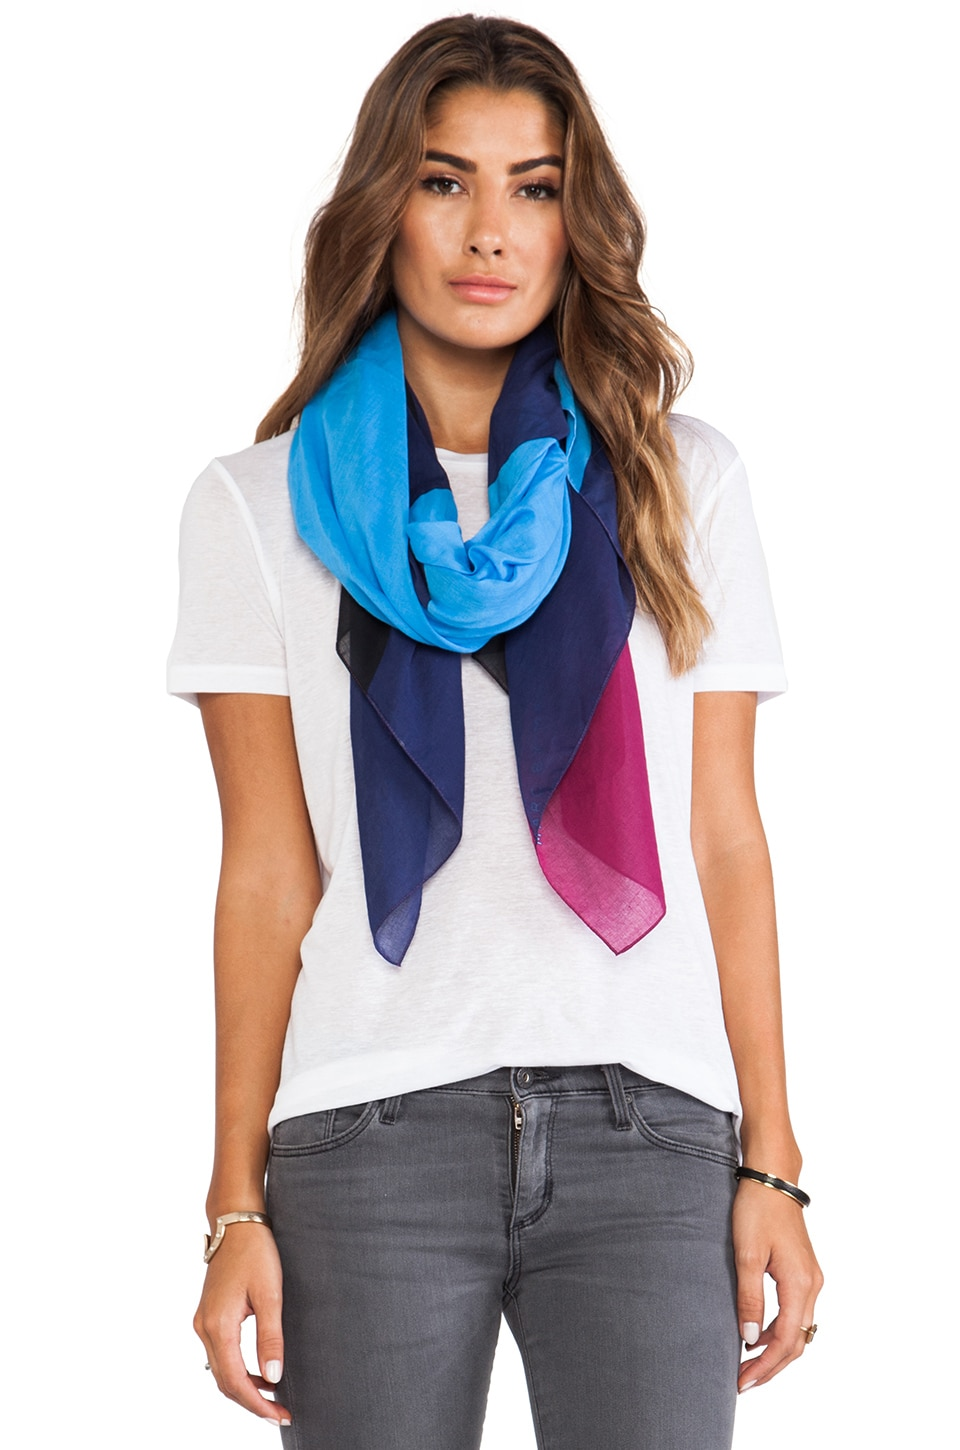 Marc by Marc Jacobs Deco Printed Scarf in Bonnie Blue Multi